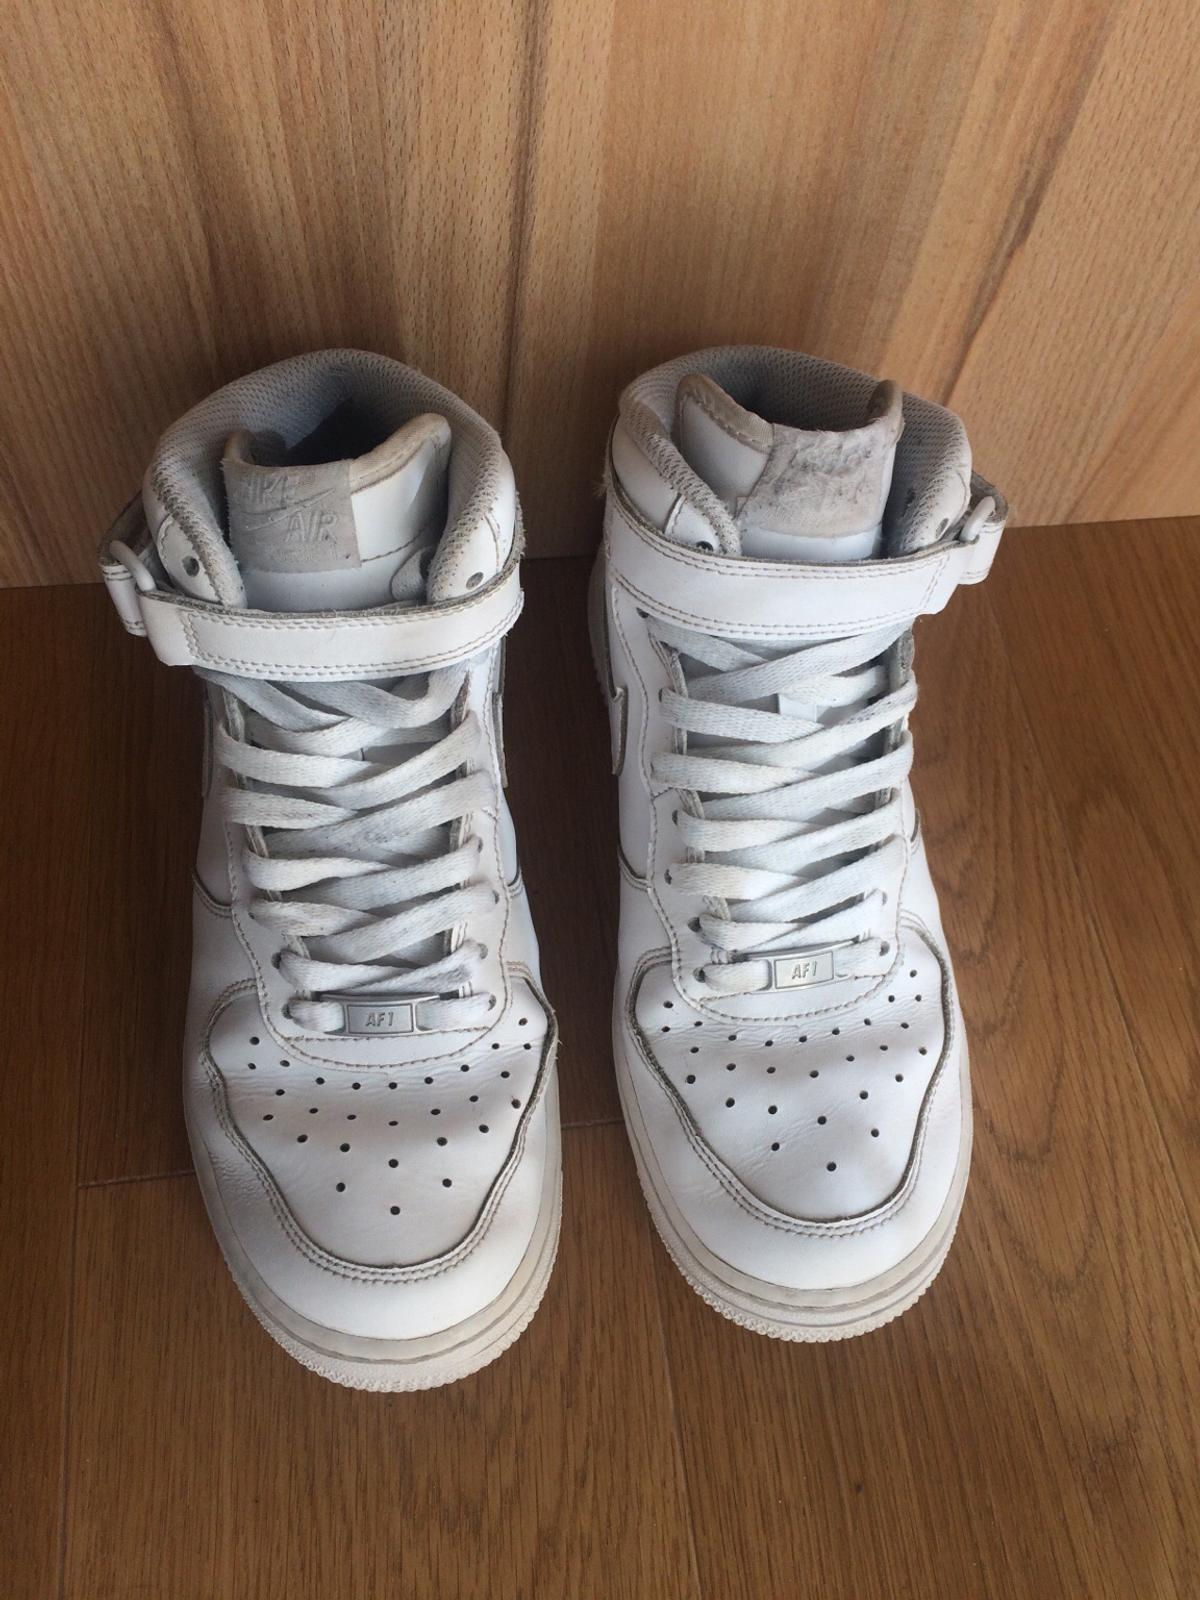 AirForce1 Top 81369 for High München €17 50 in for Nike sale bgY7y6fv